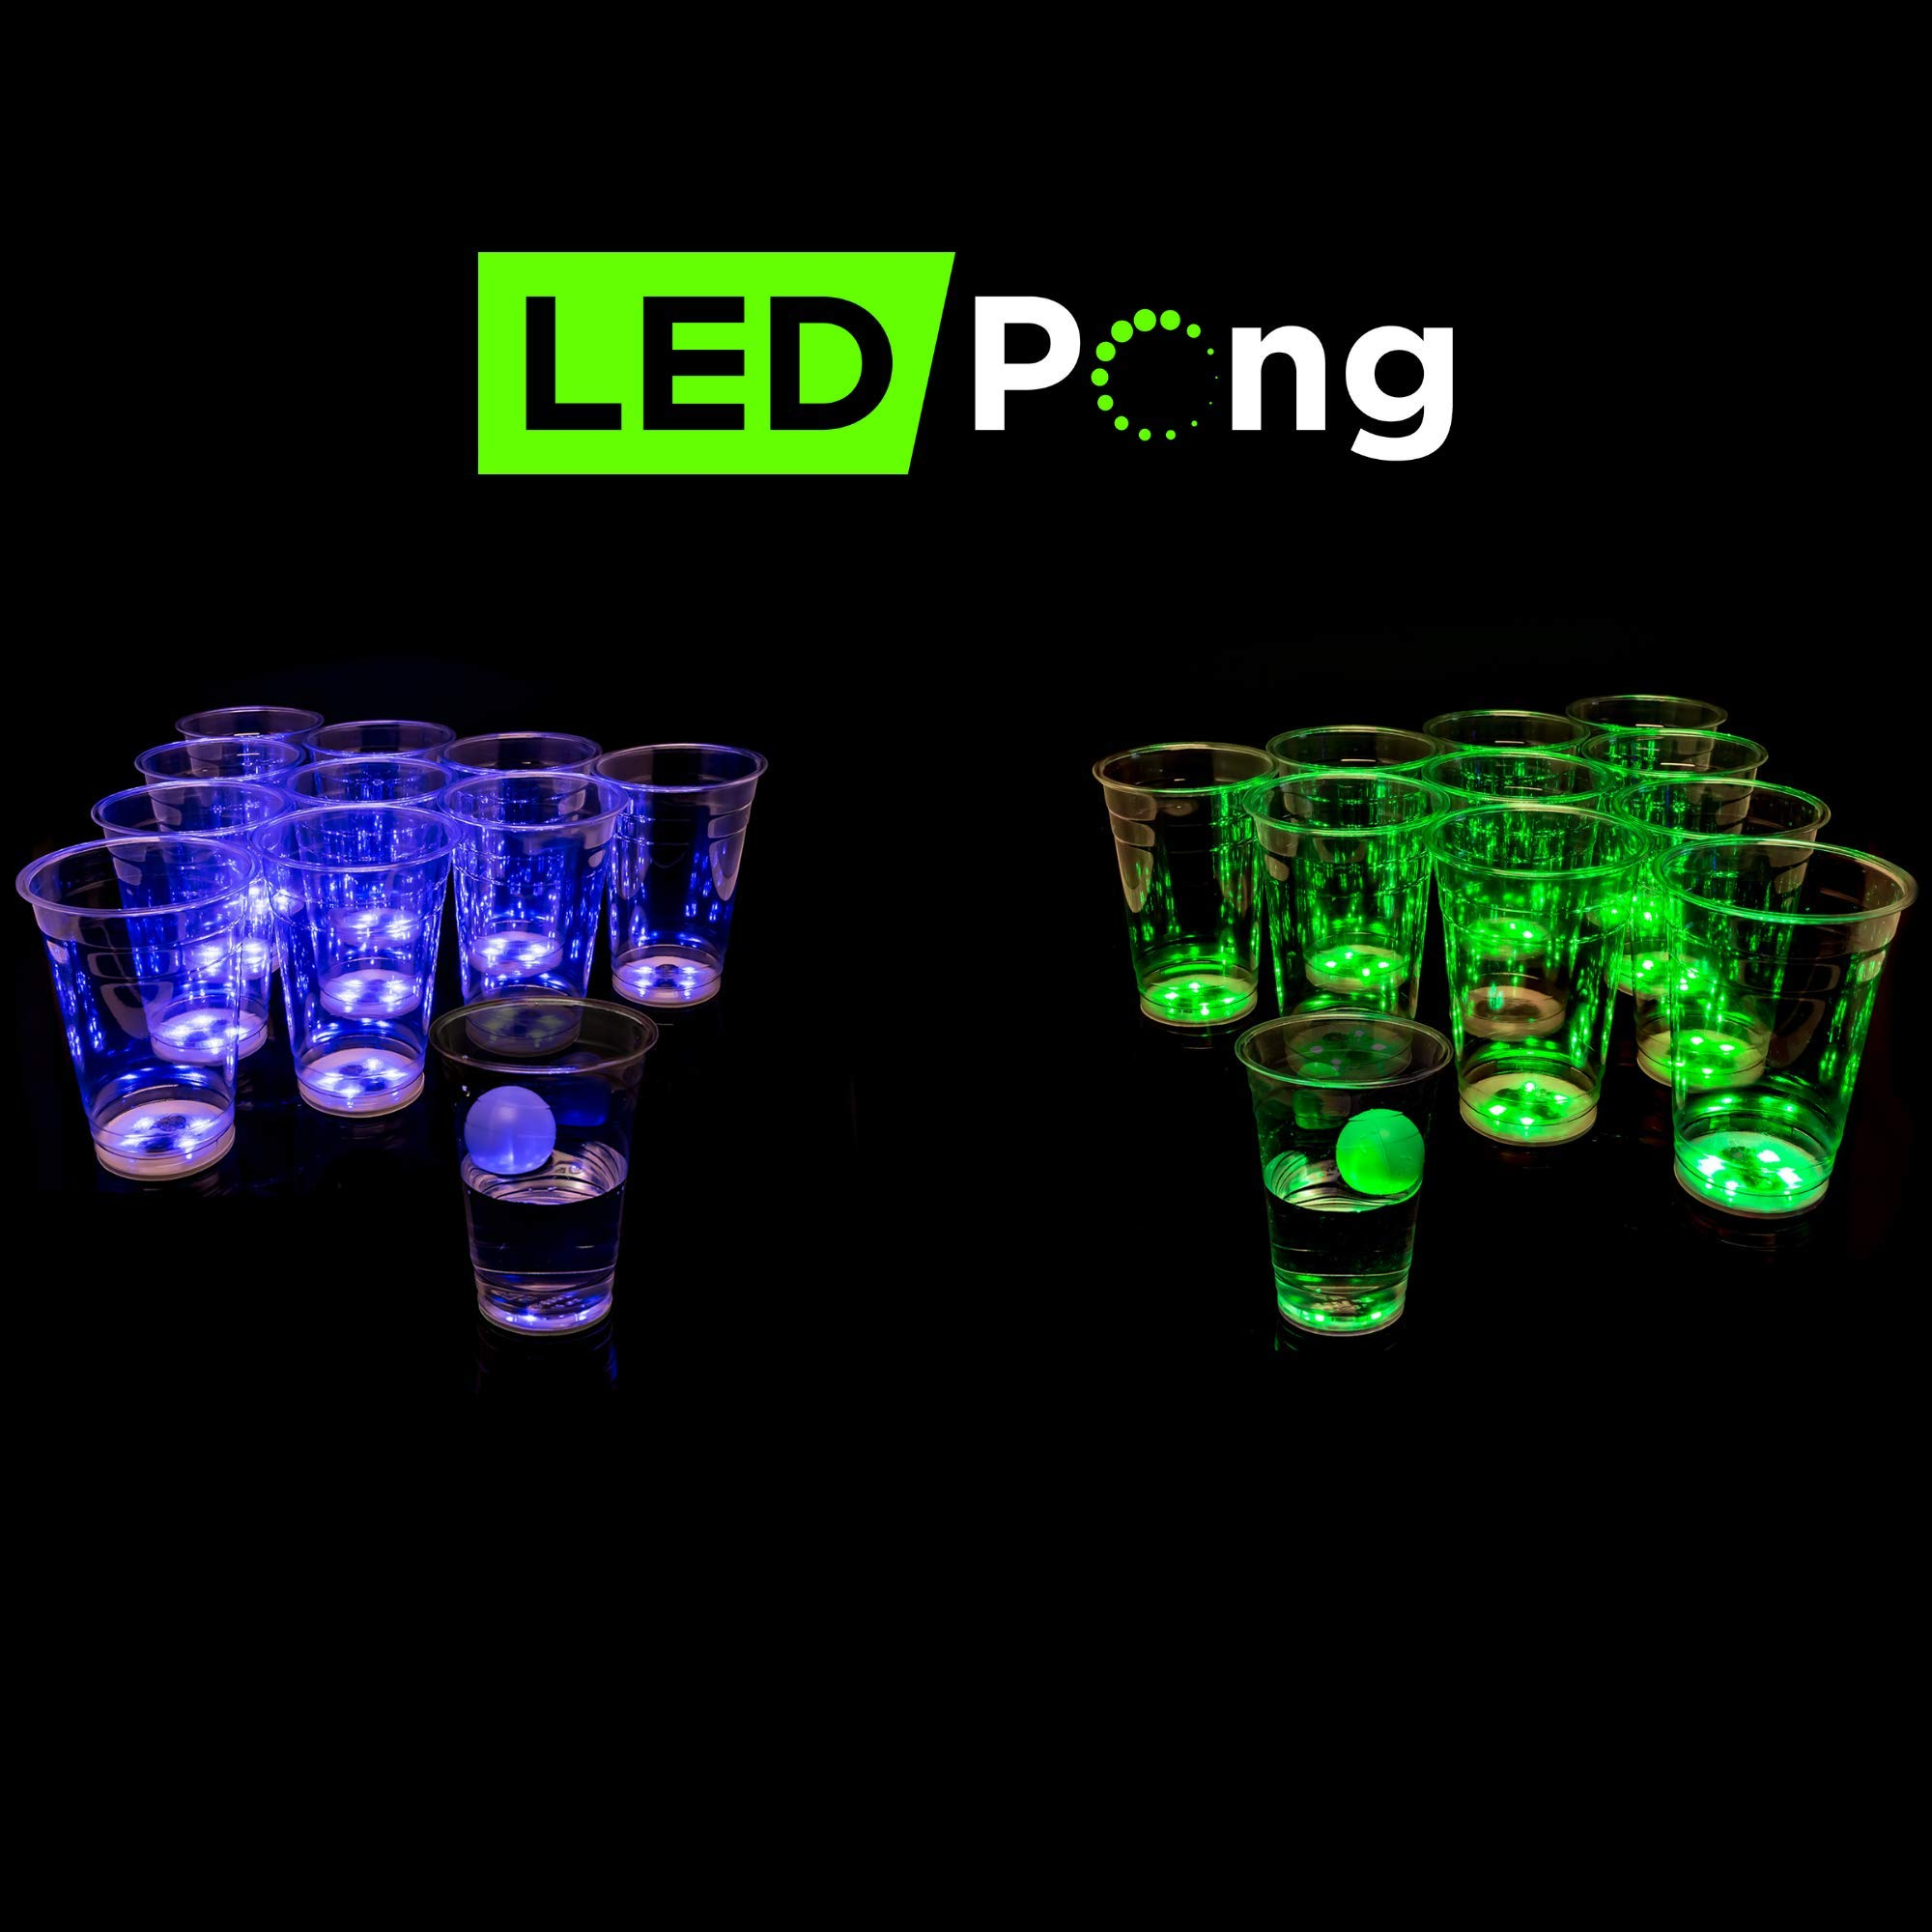 LED PONG Beer Pong Game Set Blue vs Green